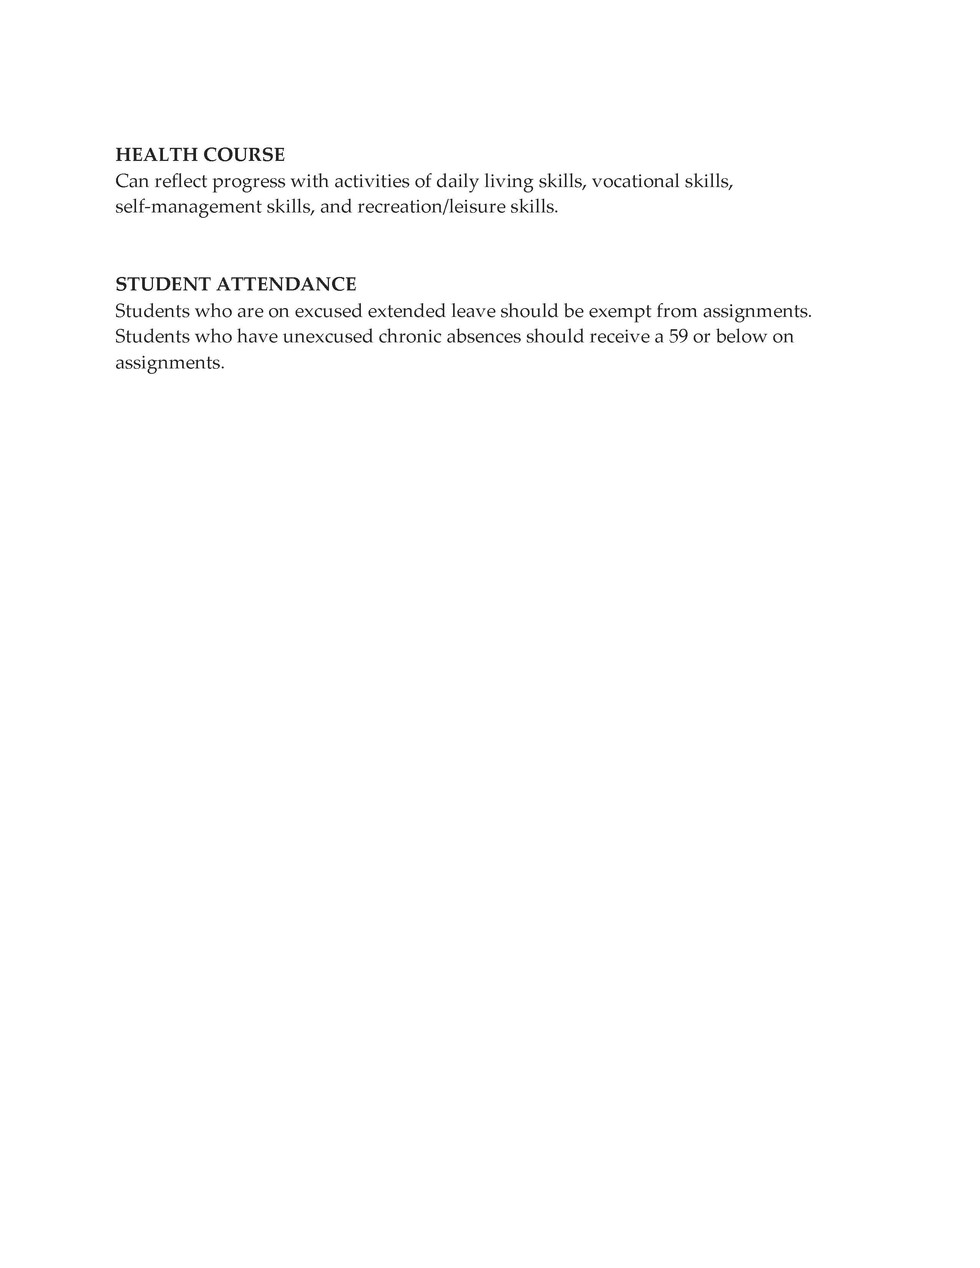 SY 20-21 Baer Grading Policy_Page_5.jpg